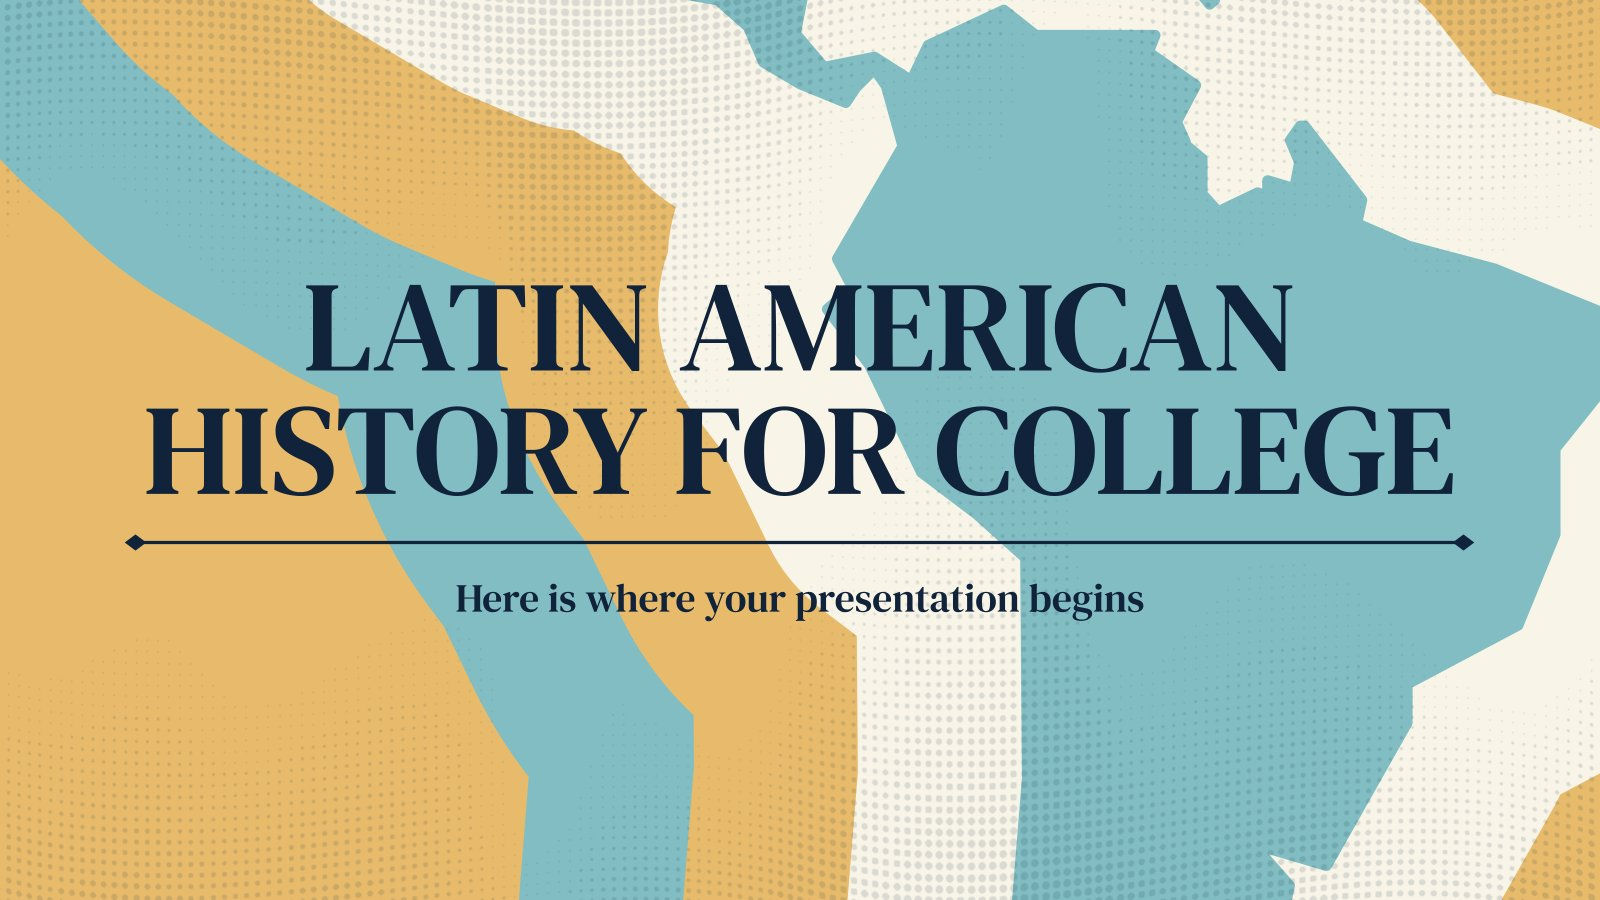 Latin American History for College presentation template